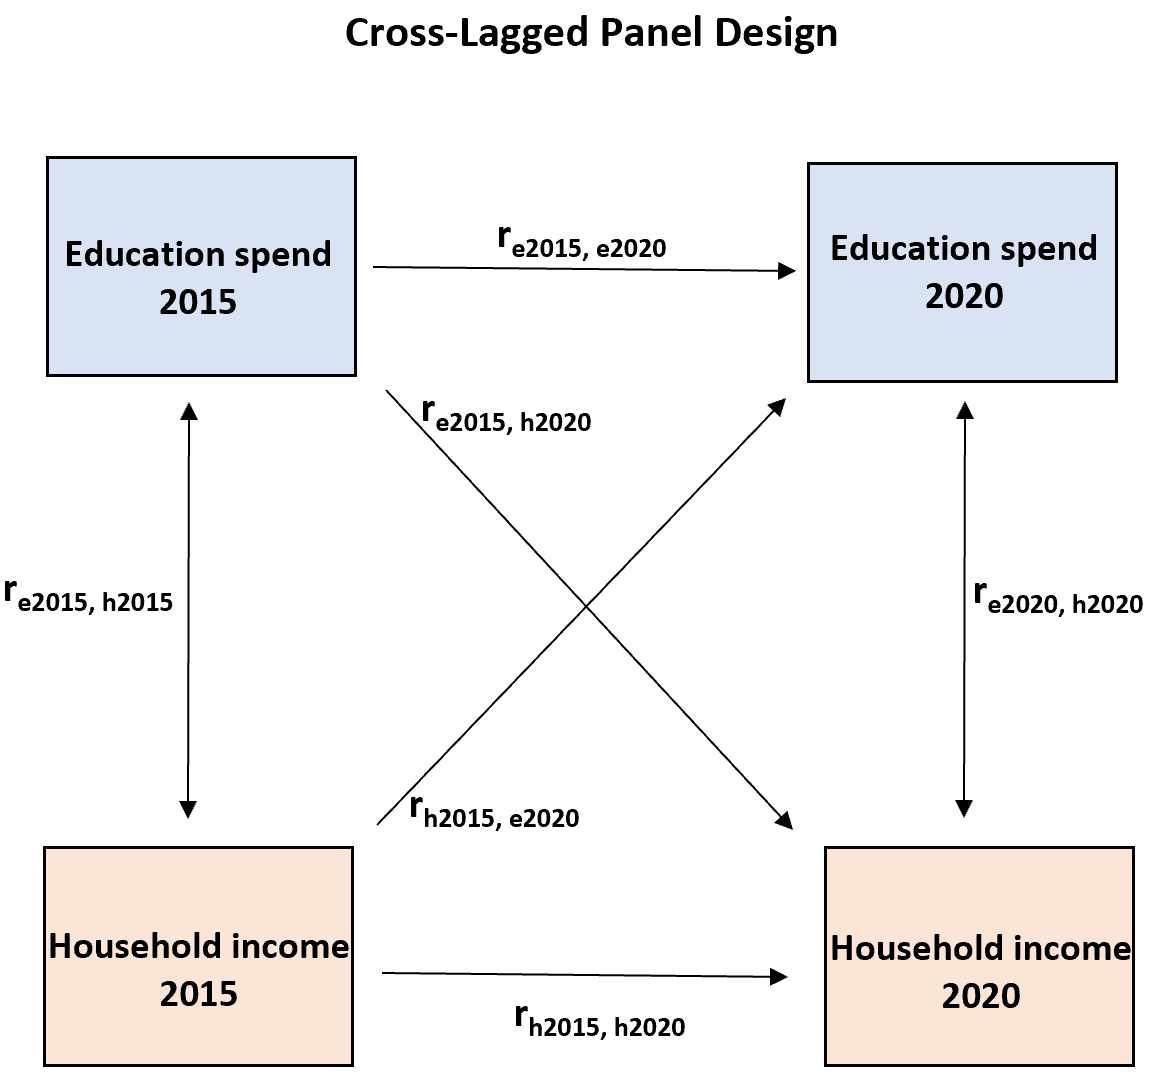 Cross-lagged panel design